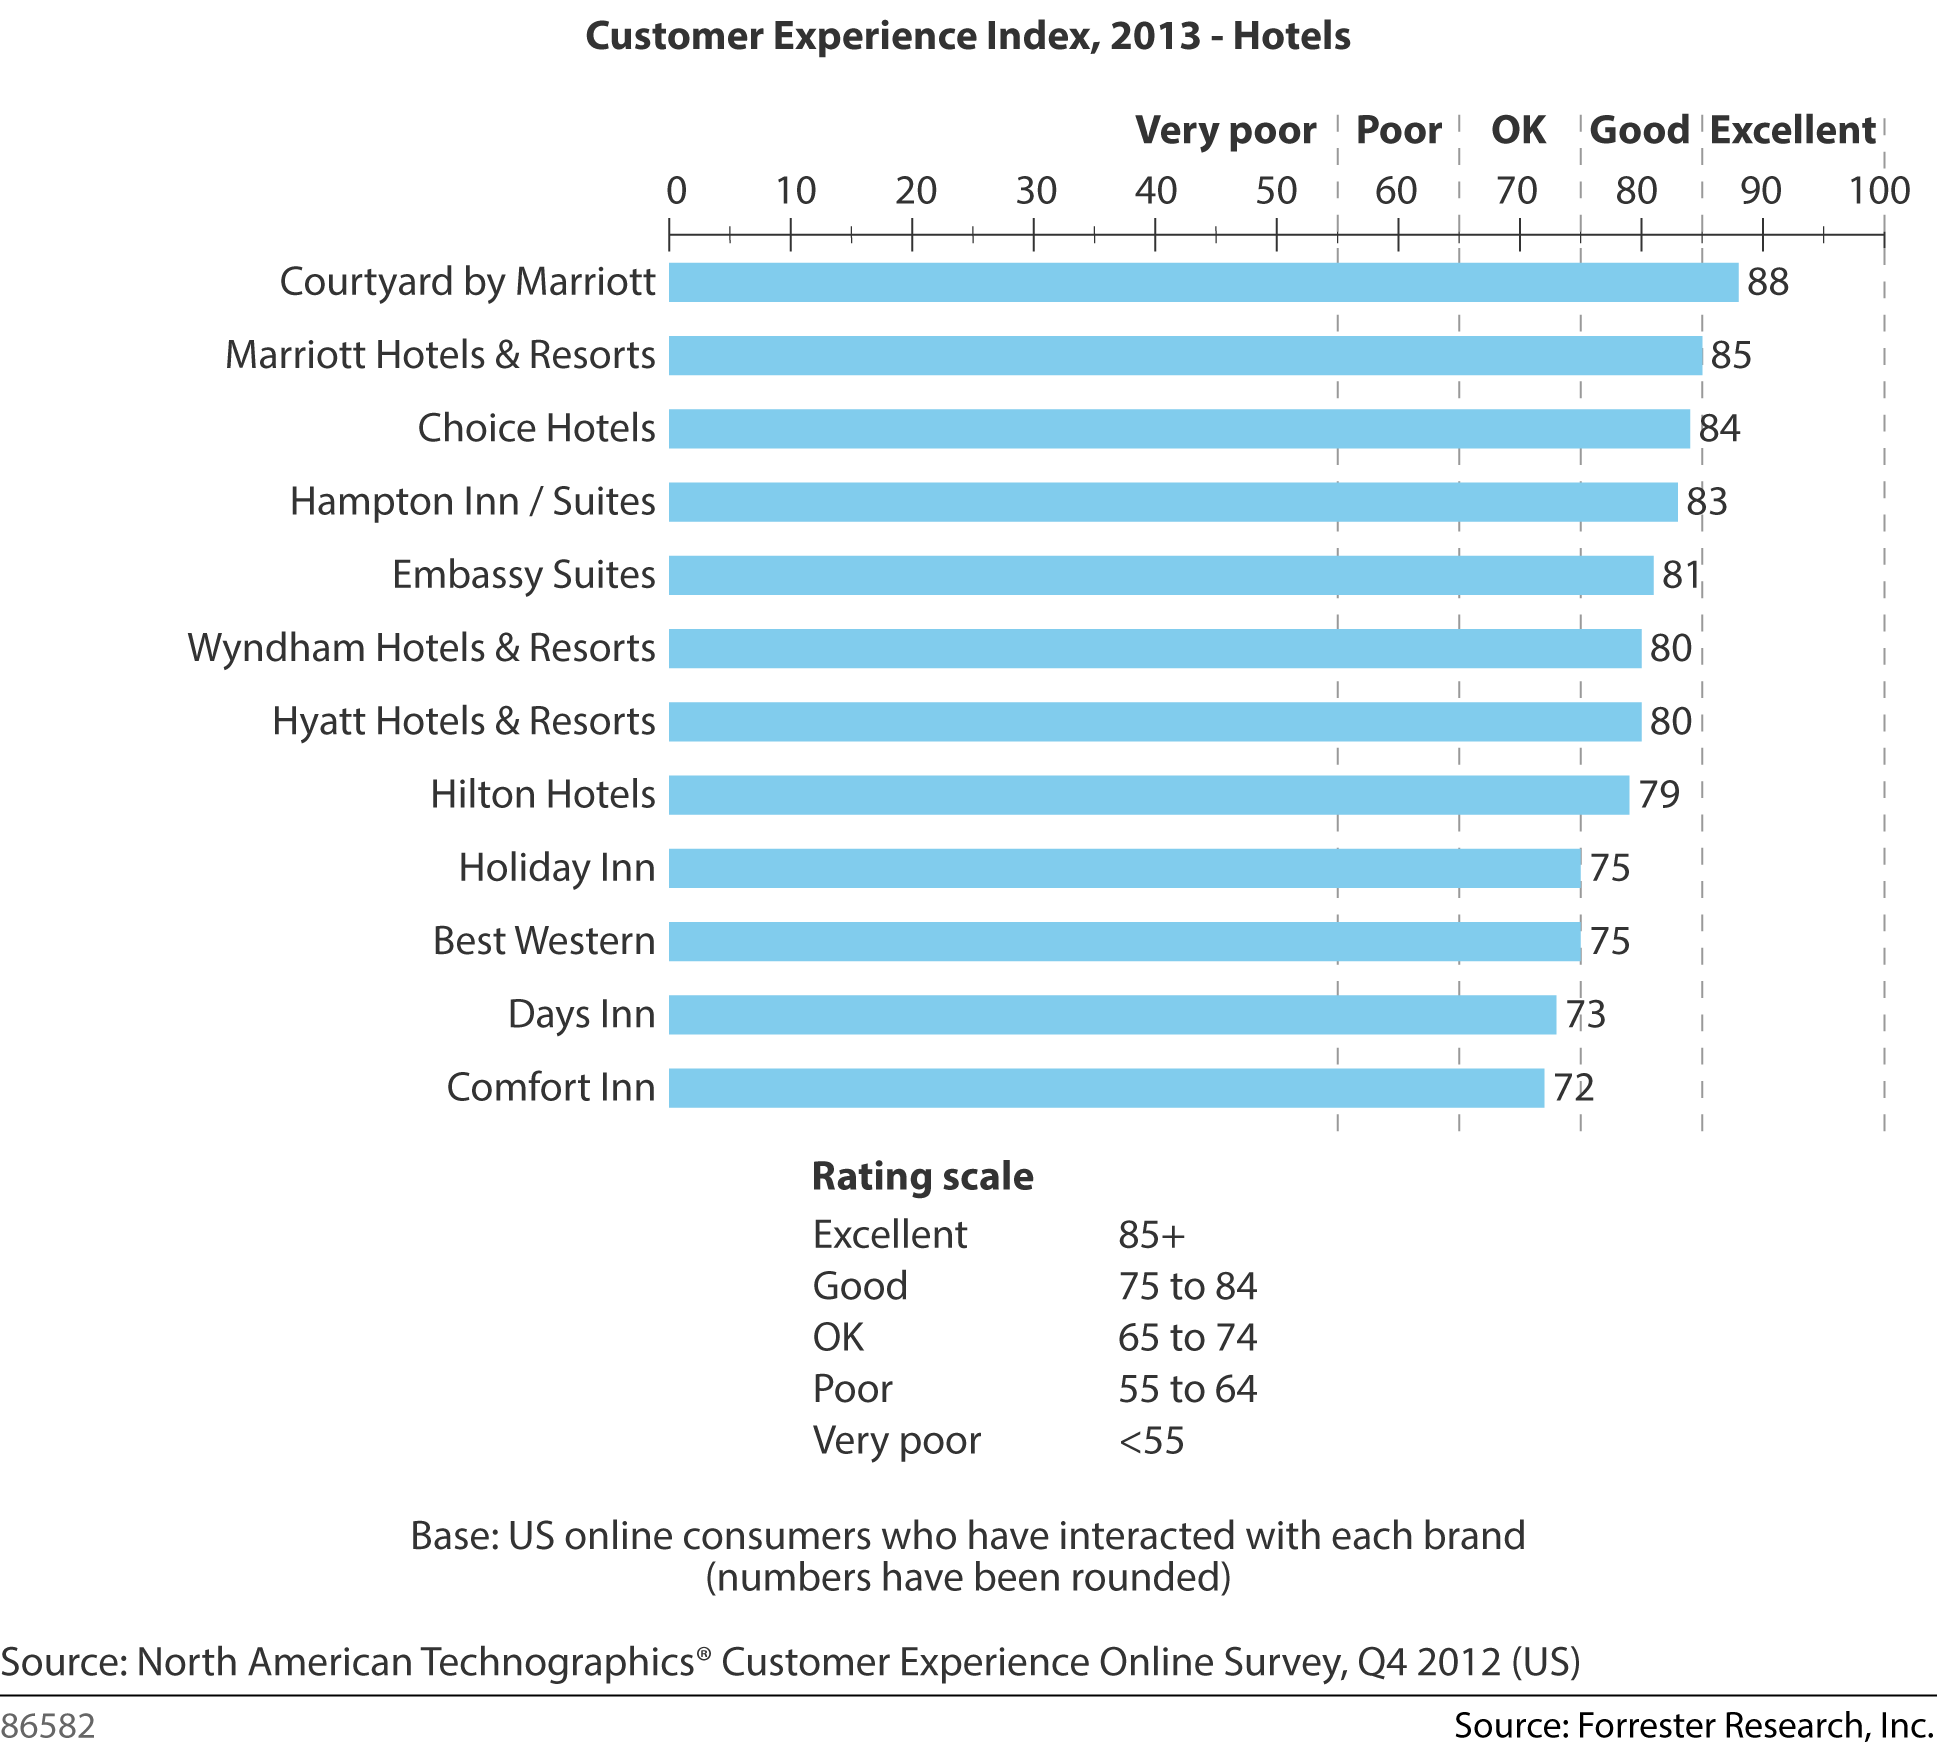 Forrester Customer Experience Index - 2013 - Hotels